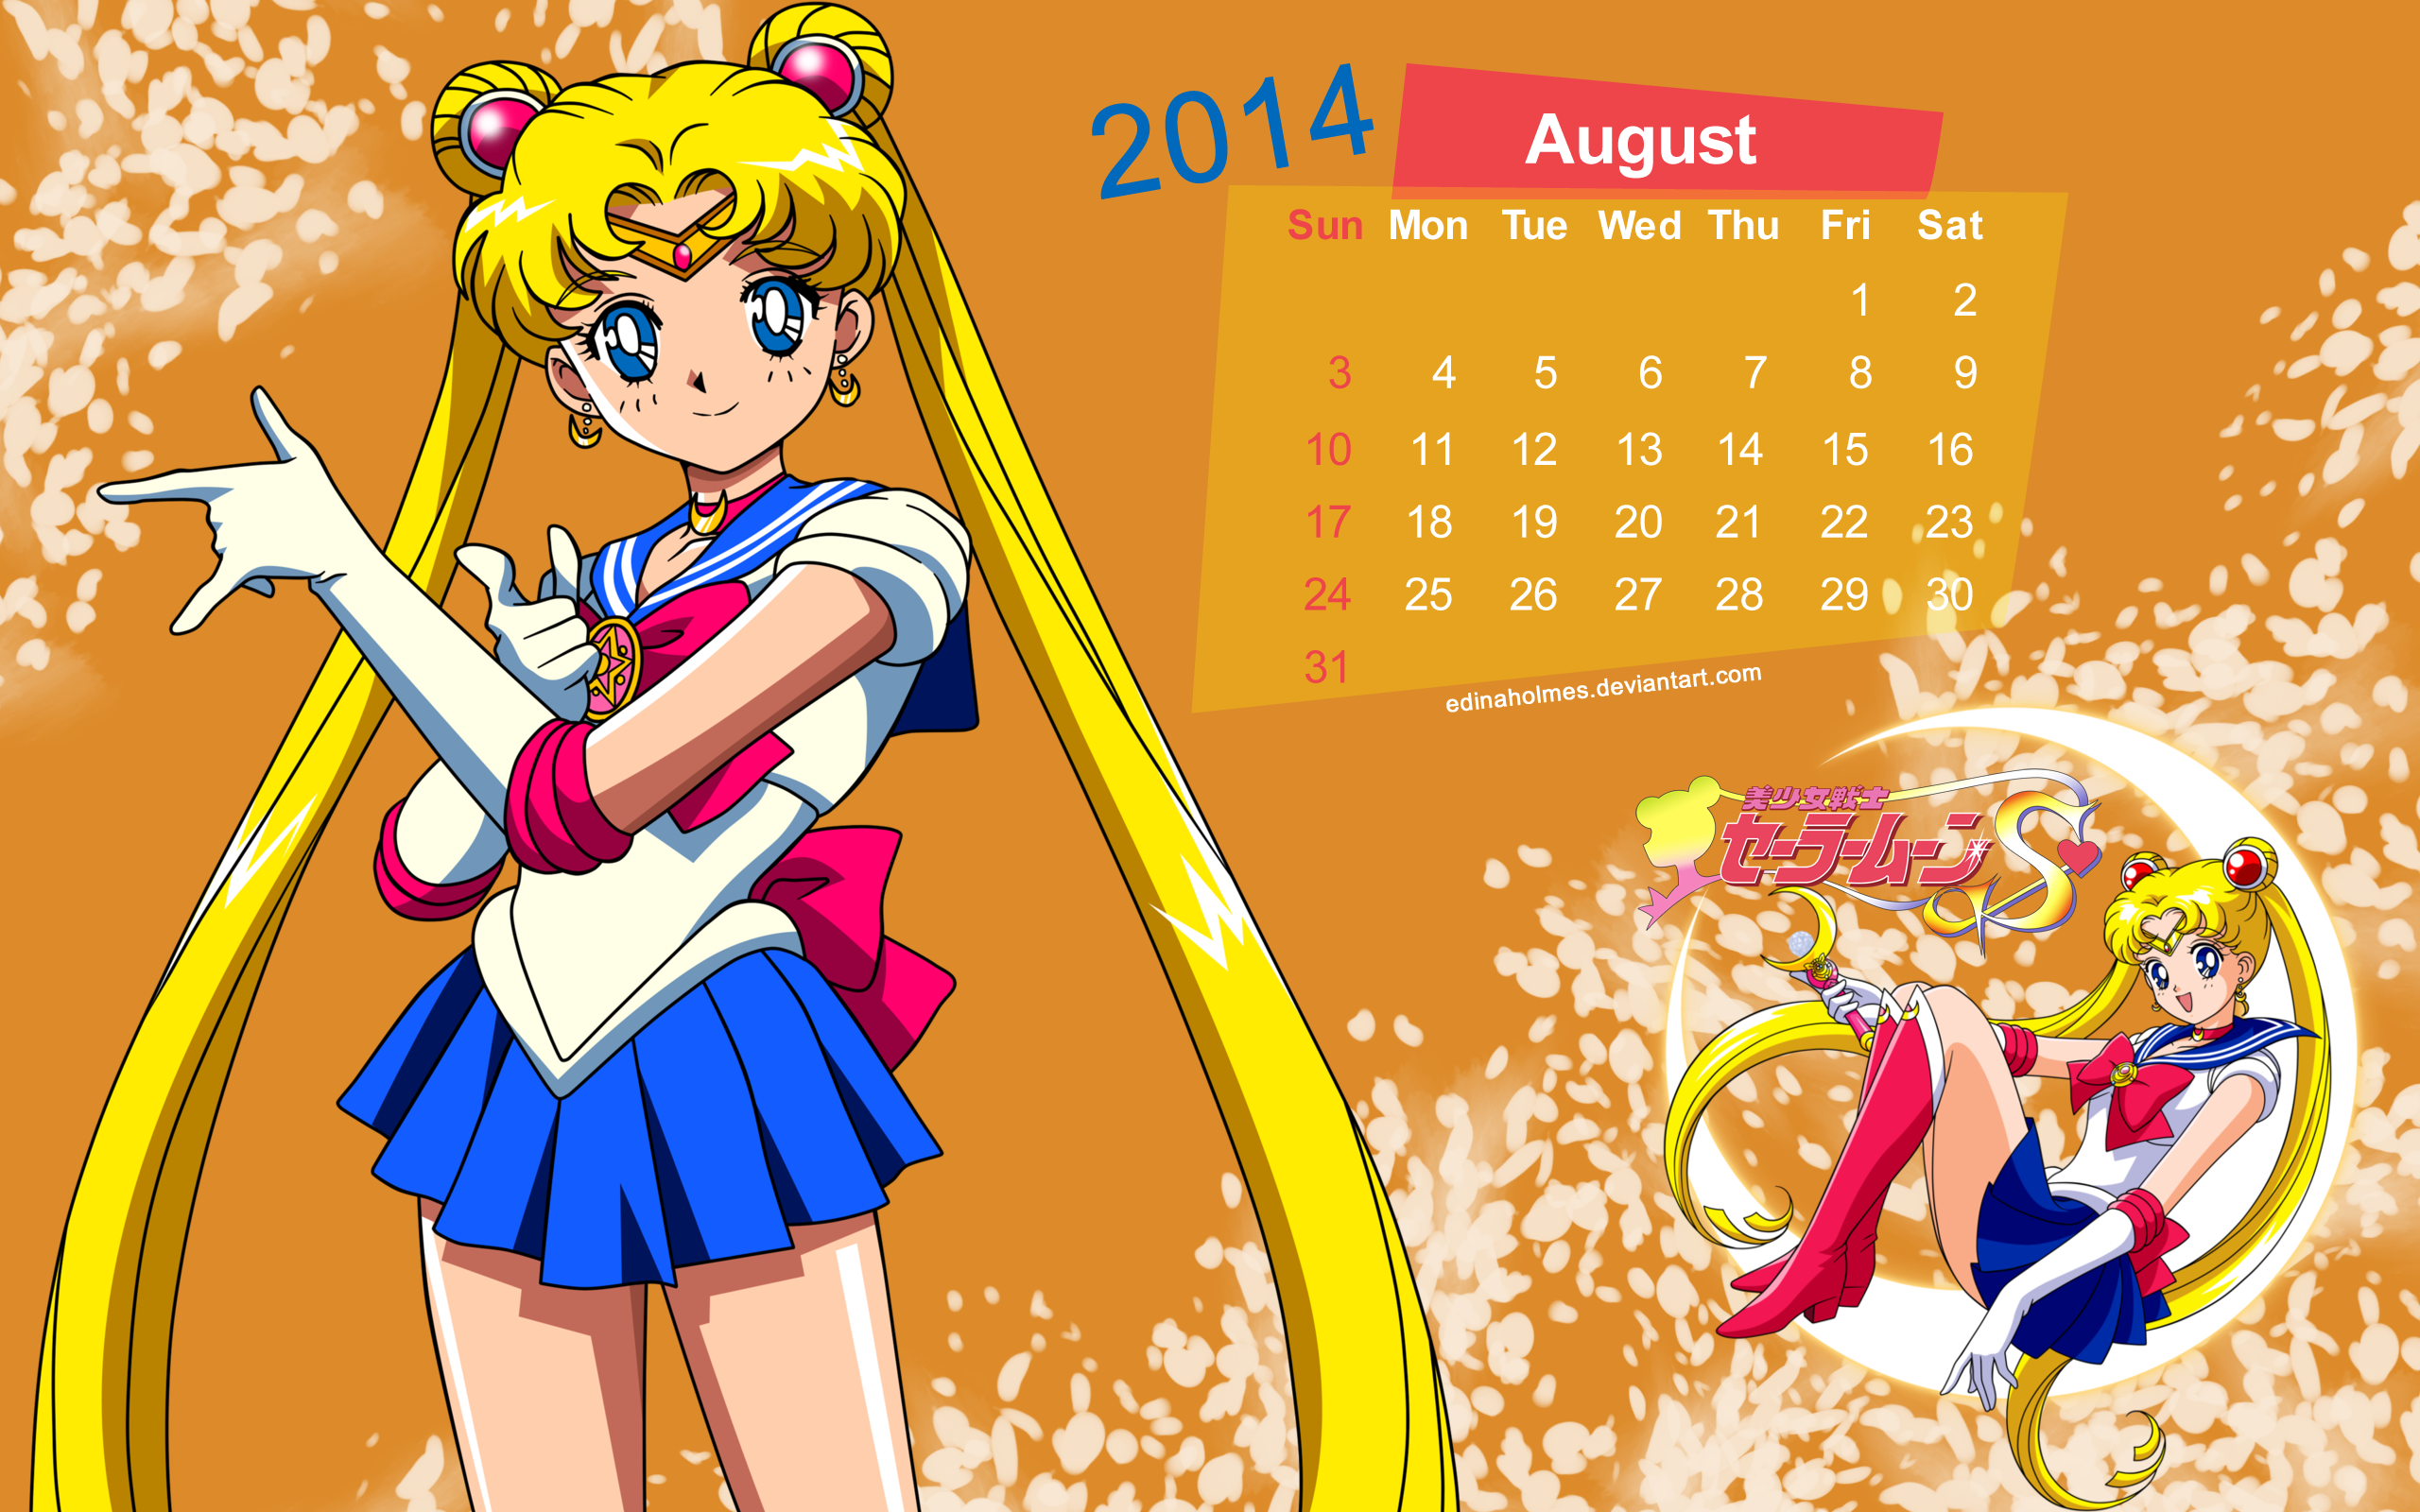 Calendar Wallpaper - August 2014 - Sailor Moon by edinaholmes